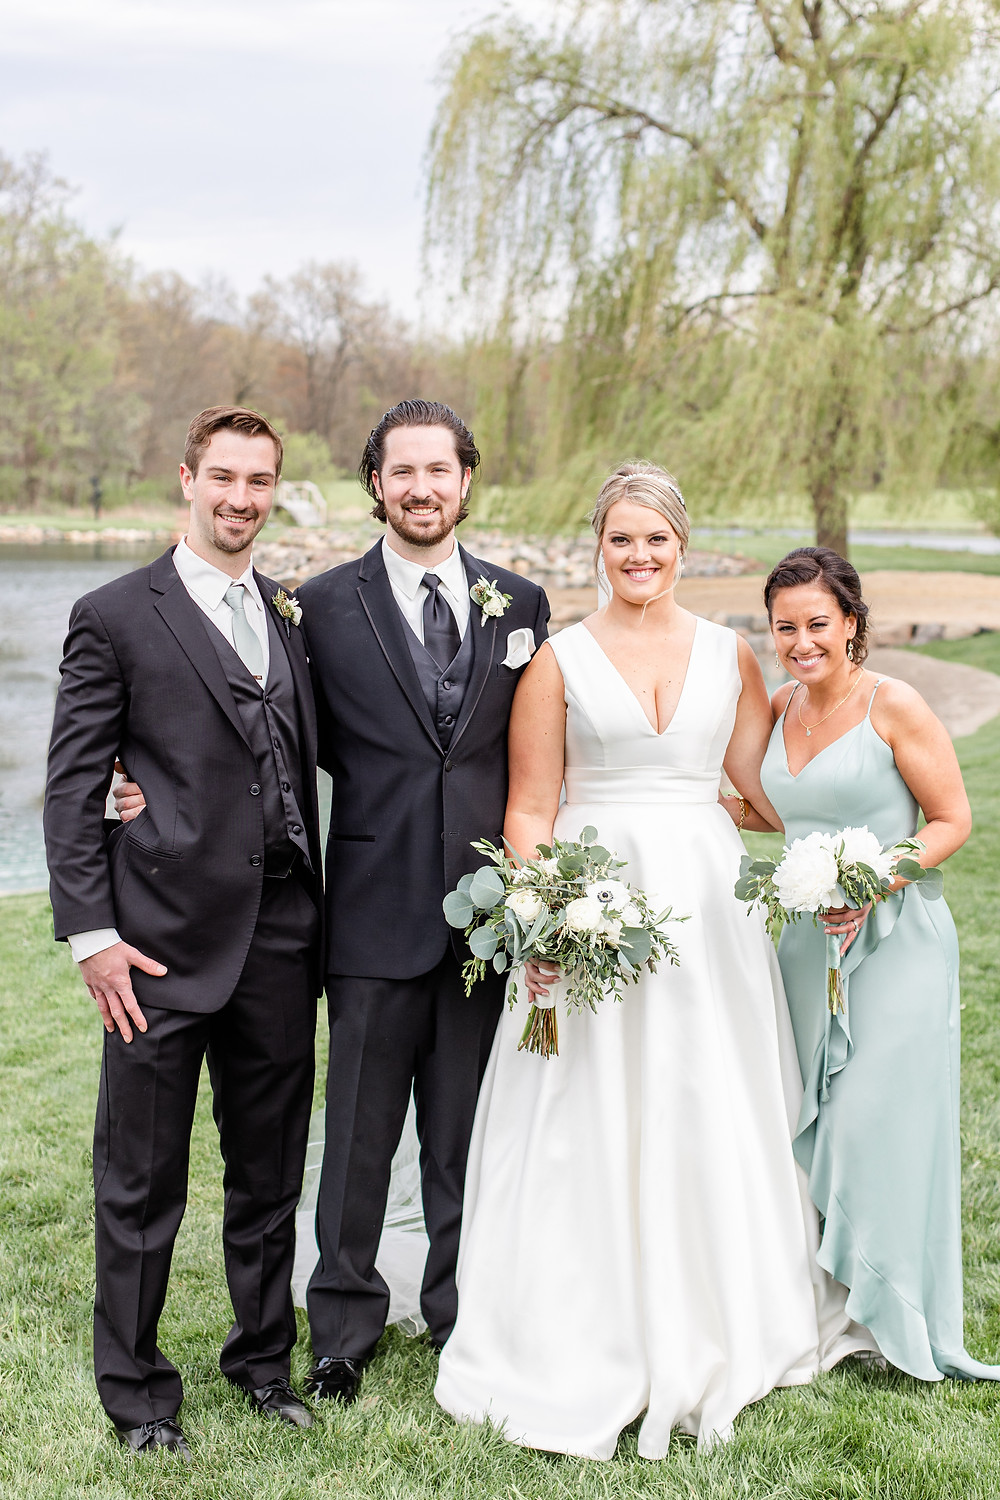 Josh and Andrea wedding photography husband and wife photographer team michigan Black Barn Wedding Venue rives junction spring bride and groom bridal party